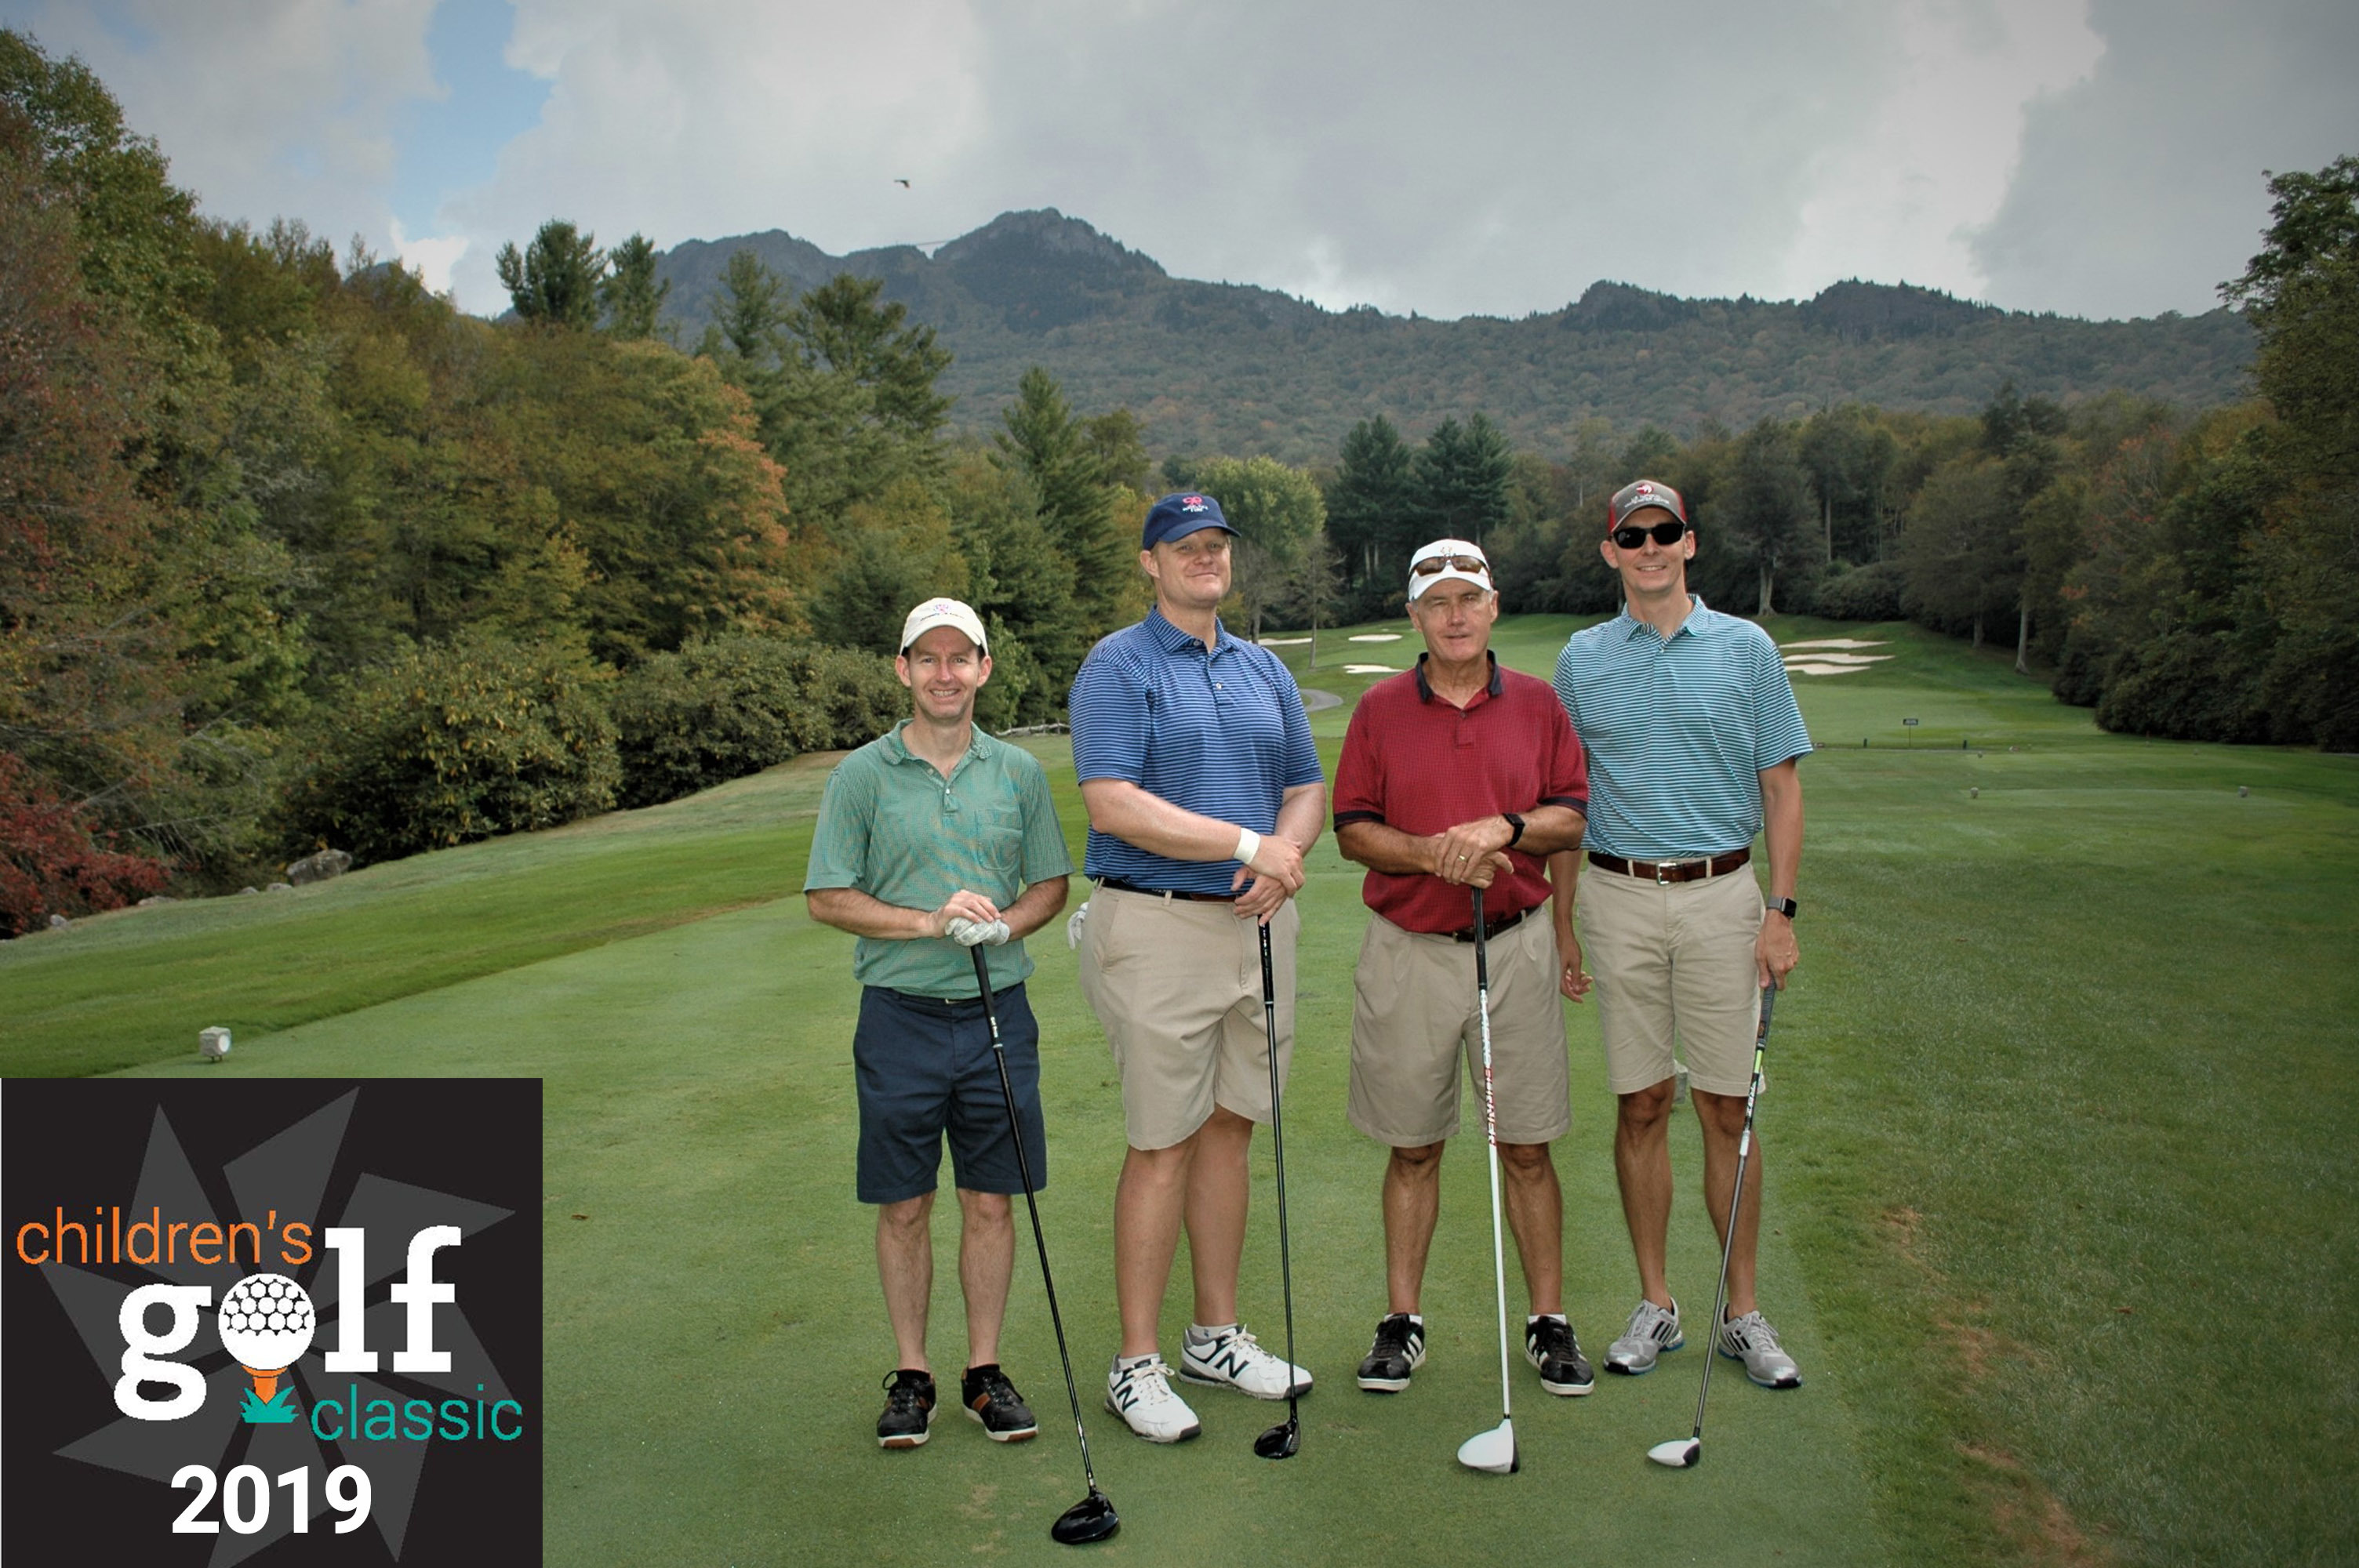 Children's Golf Classic gallery image #8